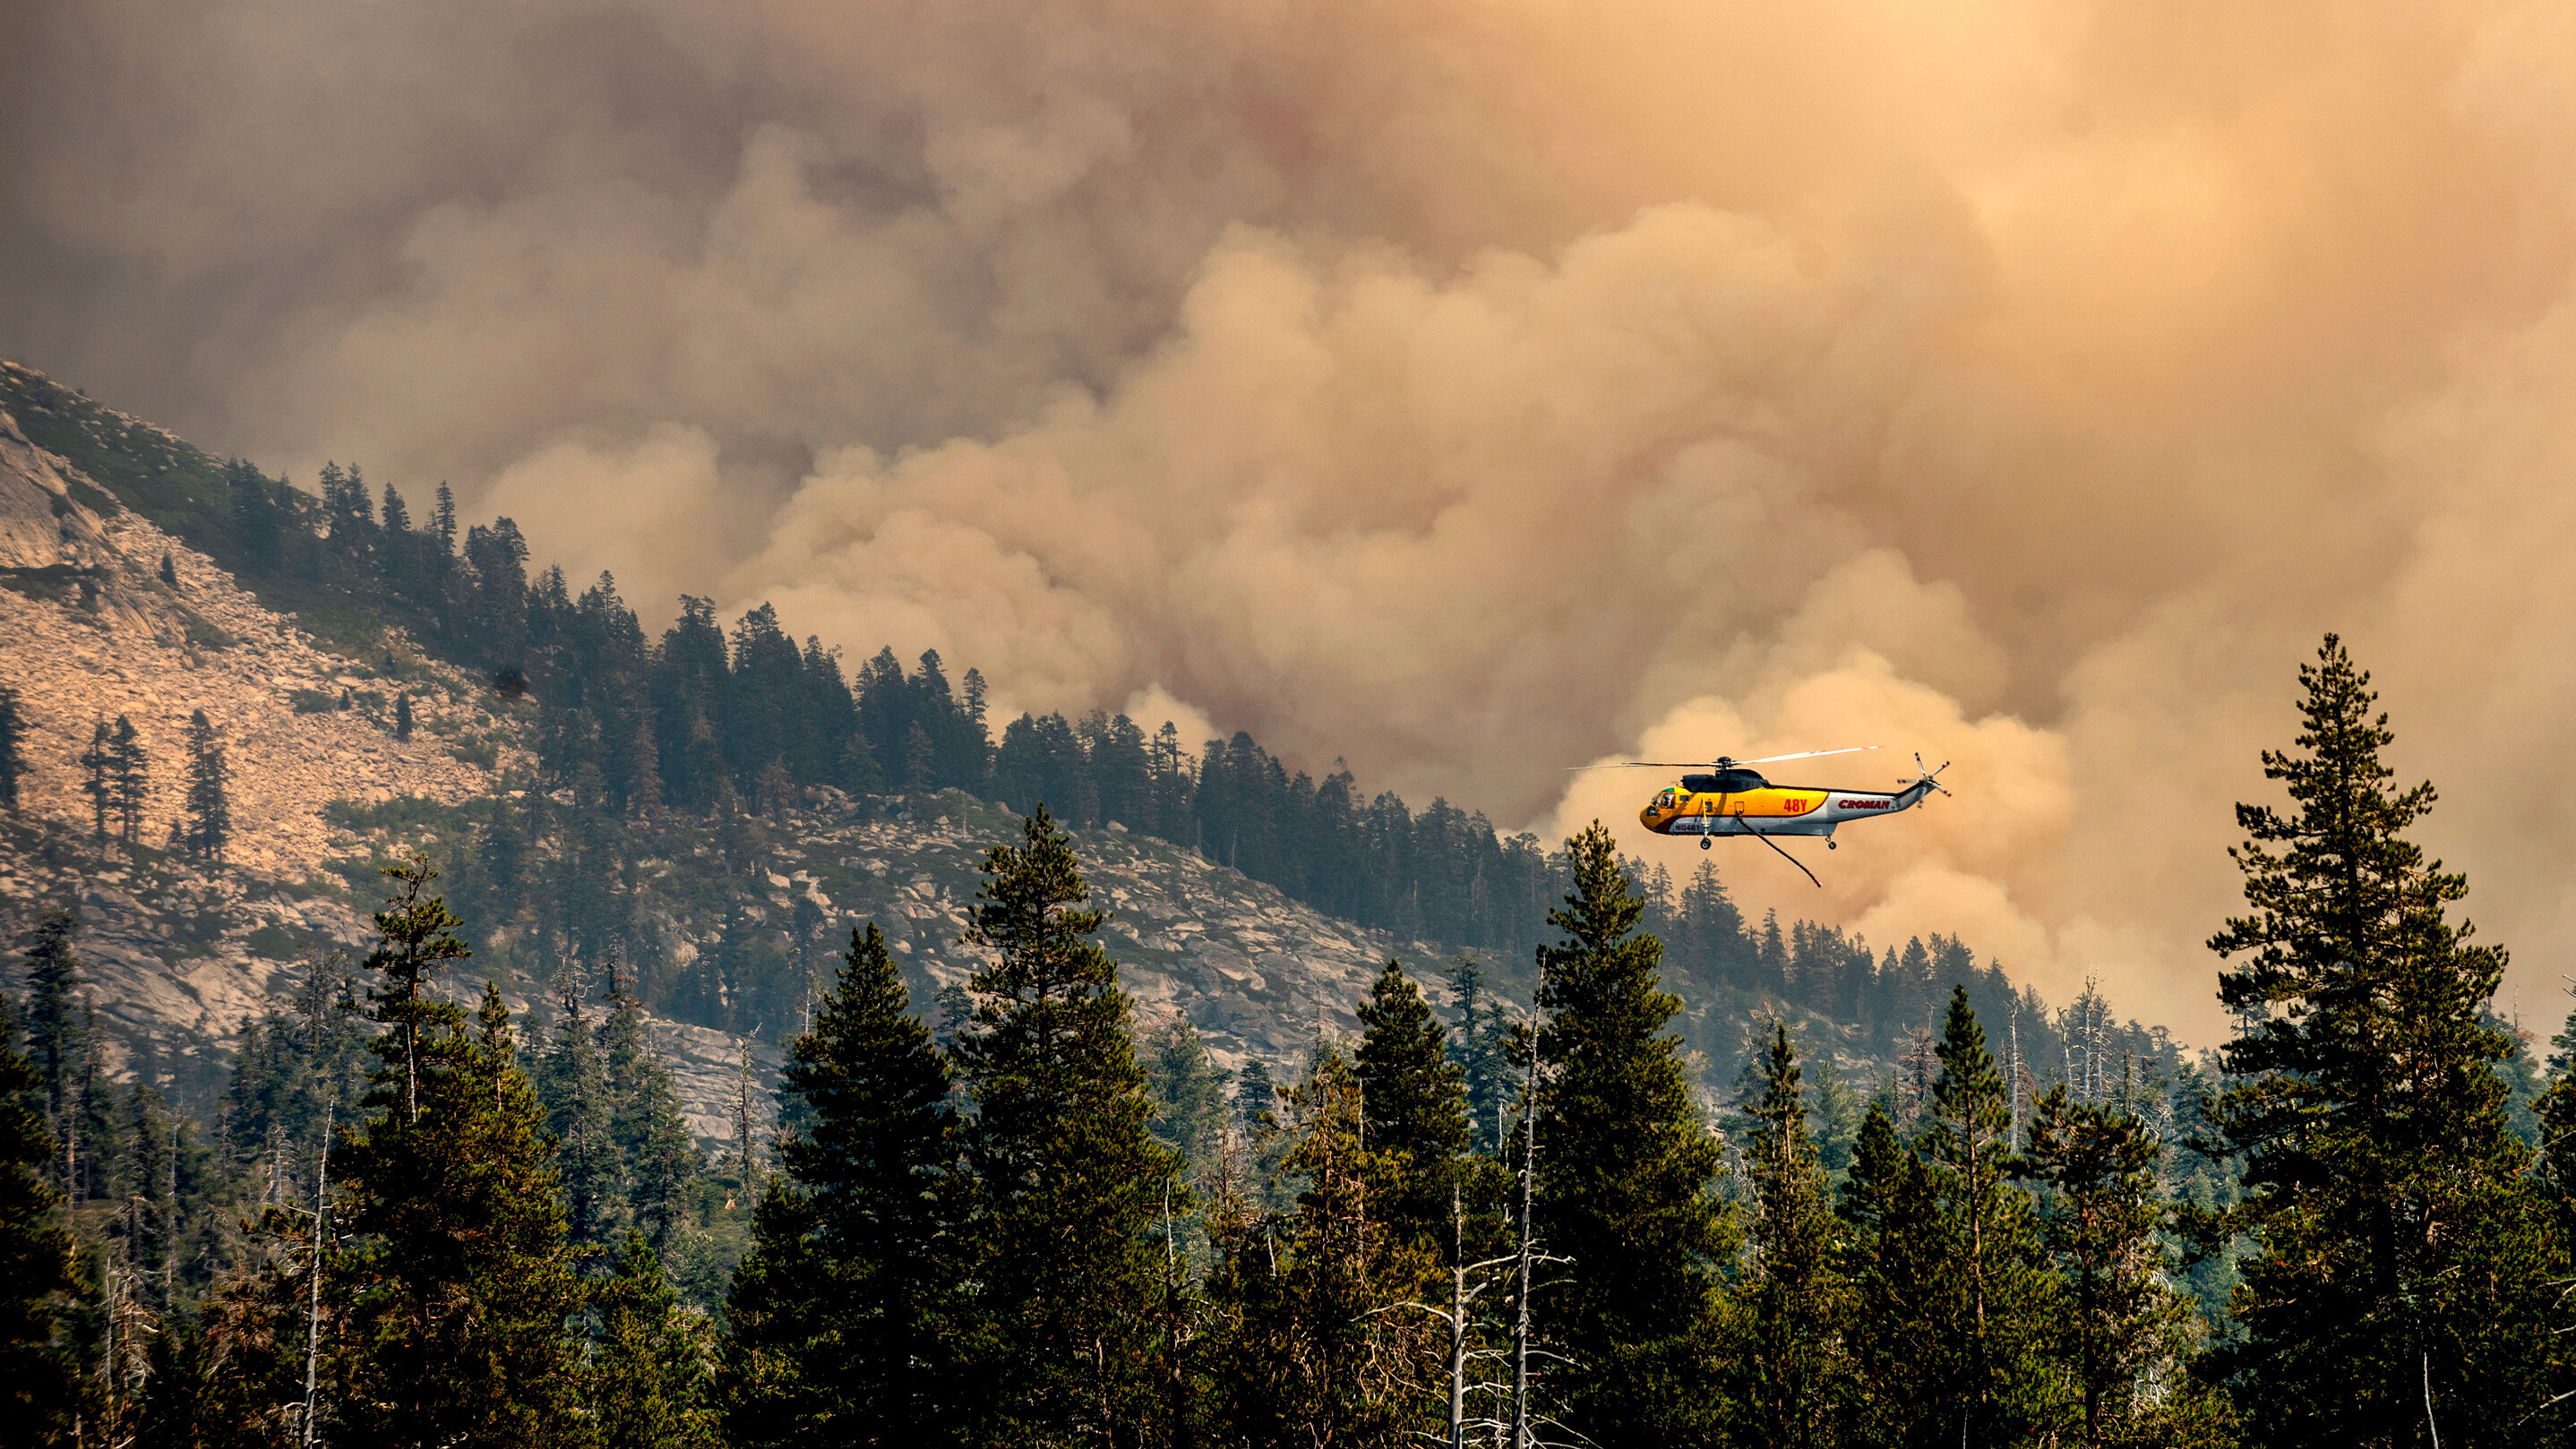 Caldor Fire near Lake Tahoe now under better control, Cal Fire says